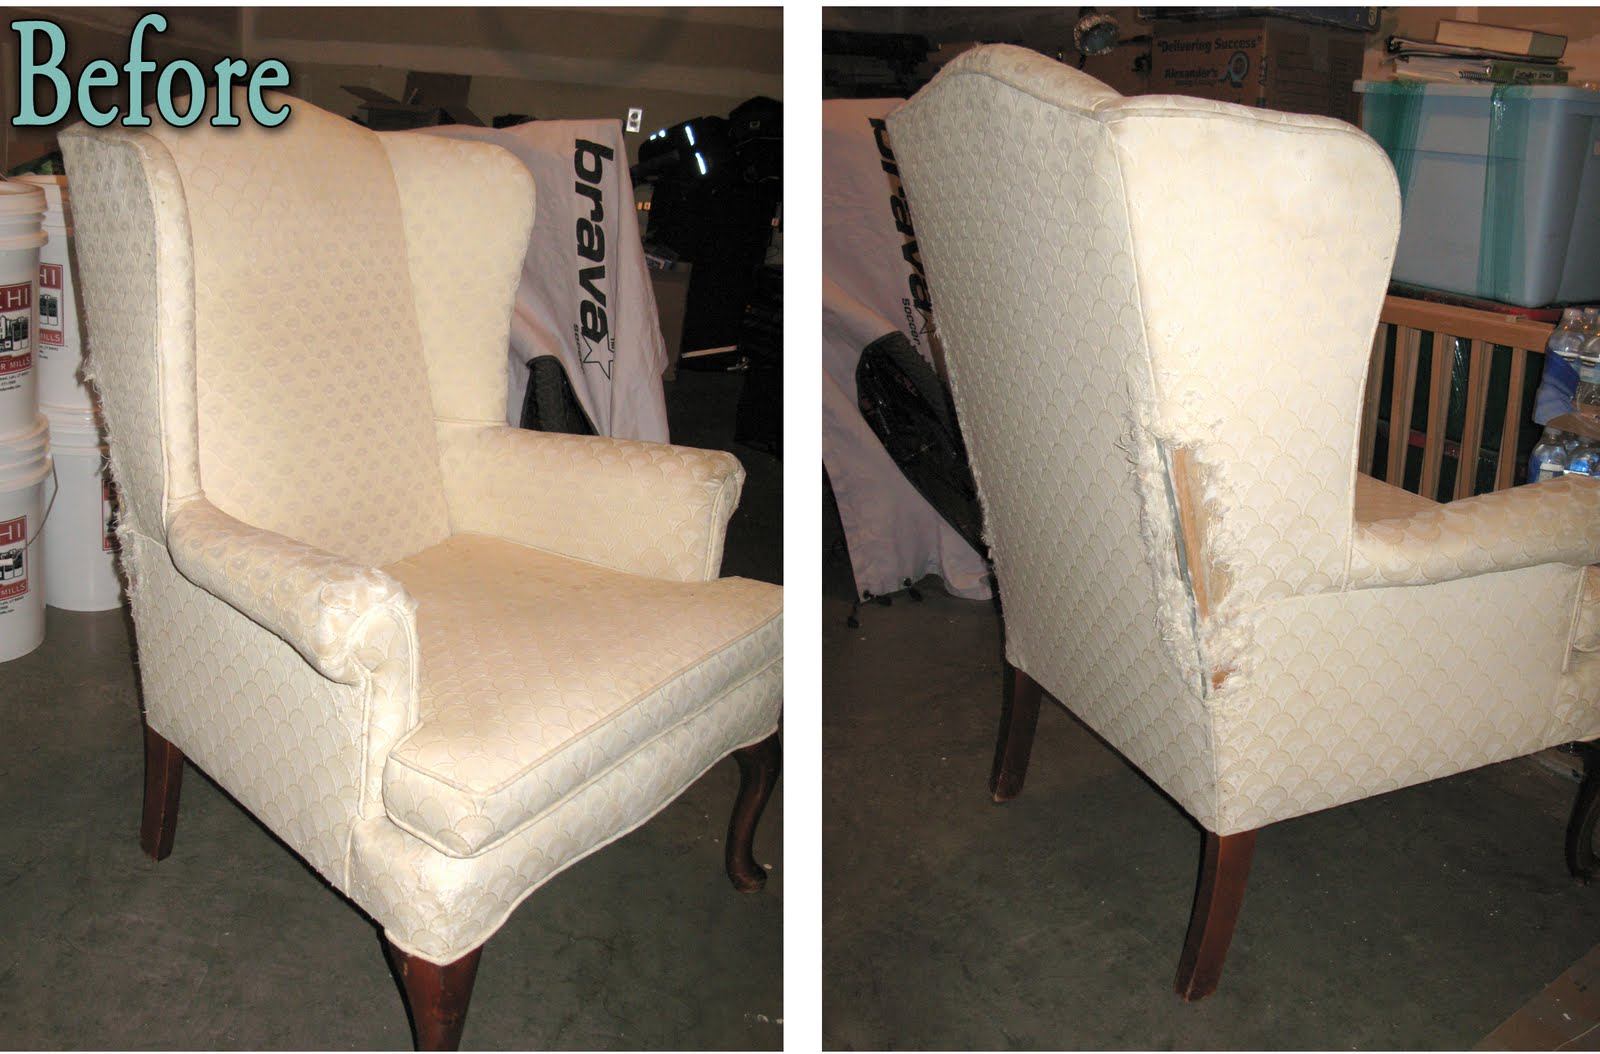 Cost To Reupholster Wingback Chair Modest Maven: Vintage Blossom Wingback Chair